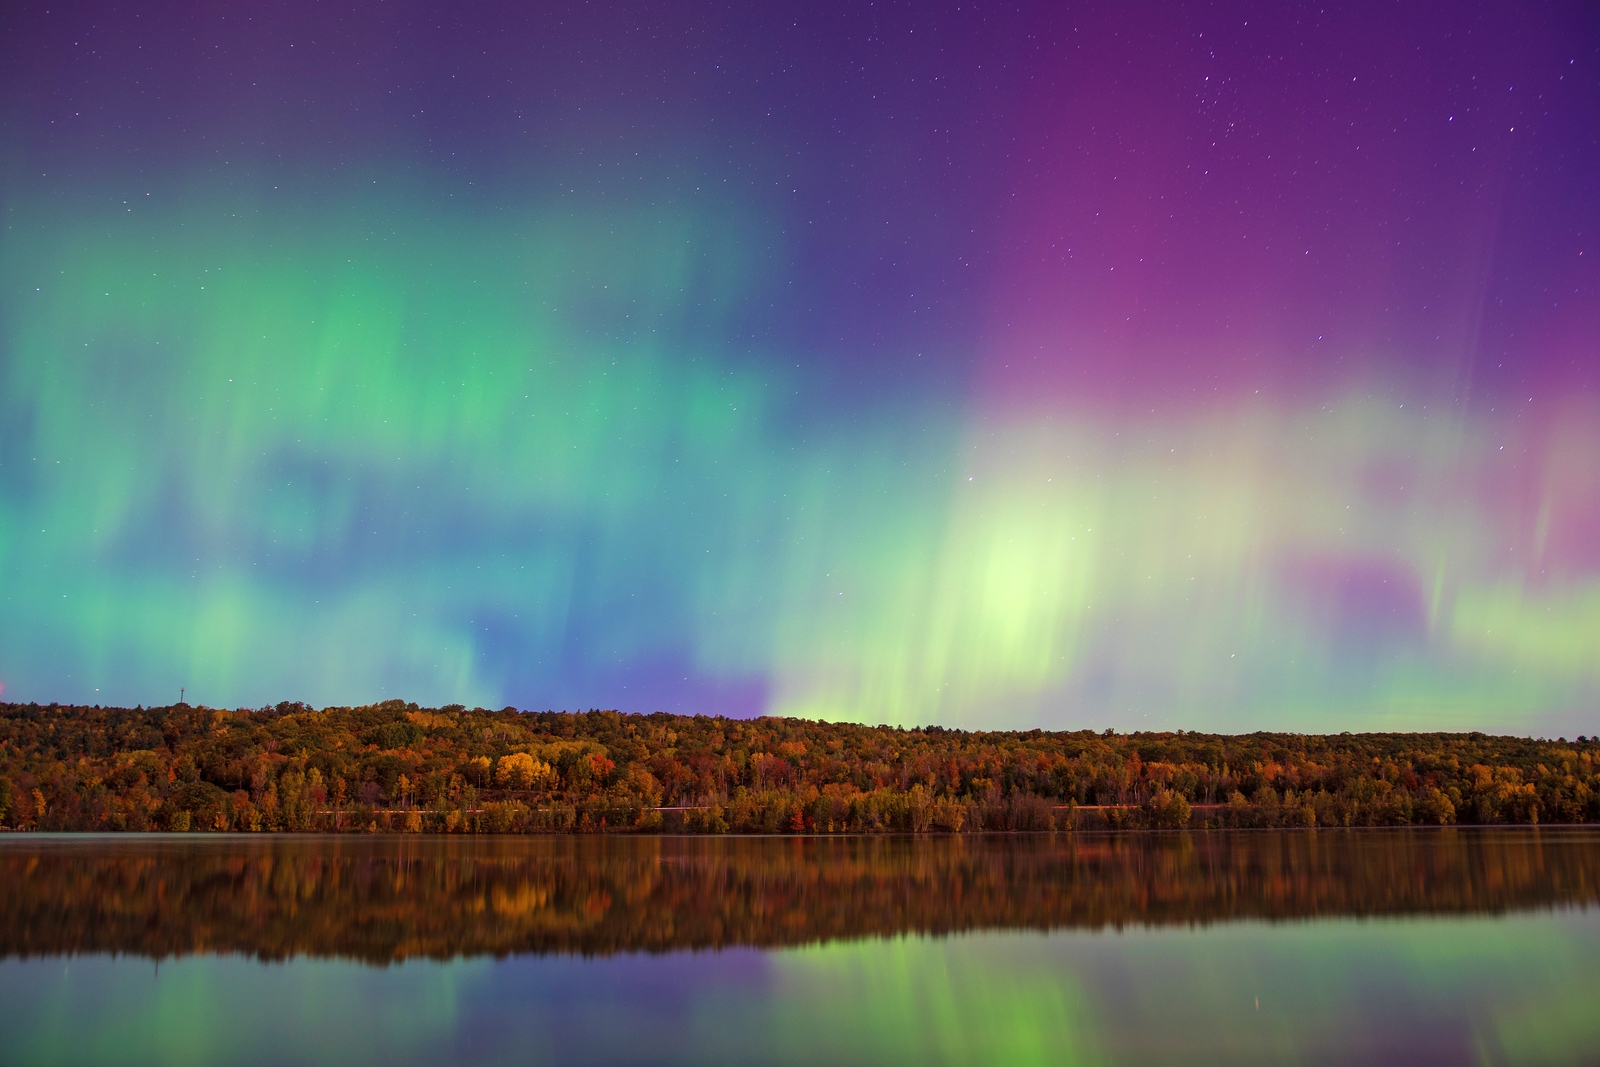 The 10 Best Places to See the Northern Lights - USA